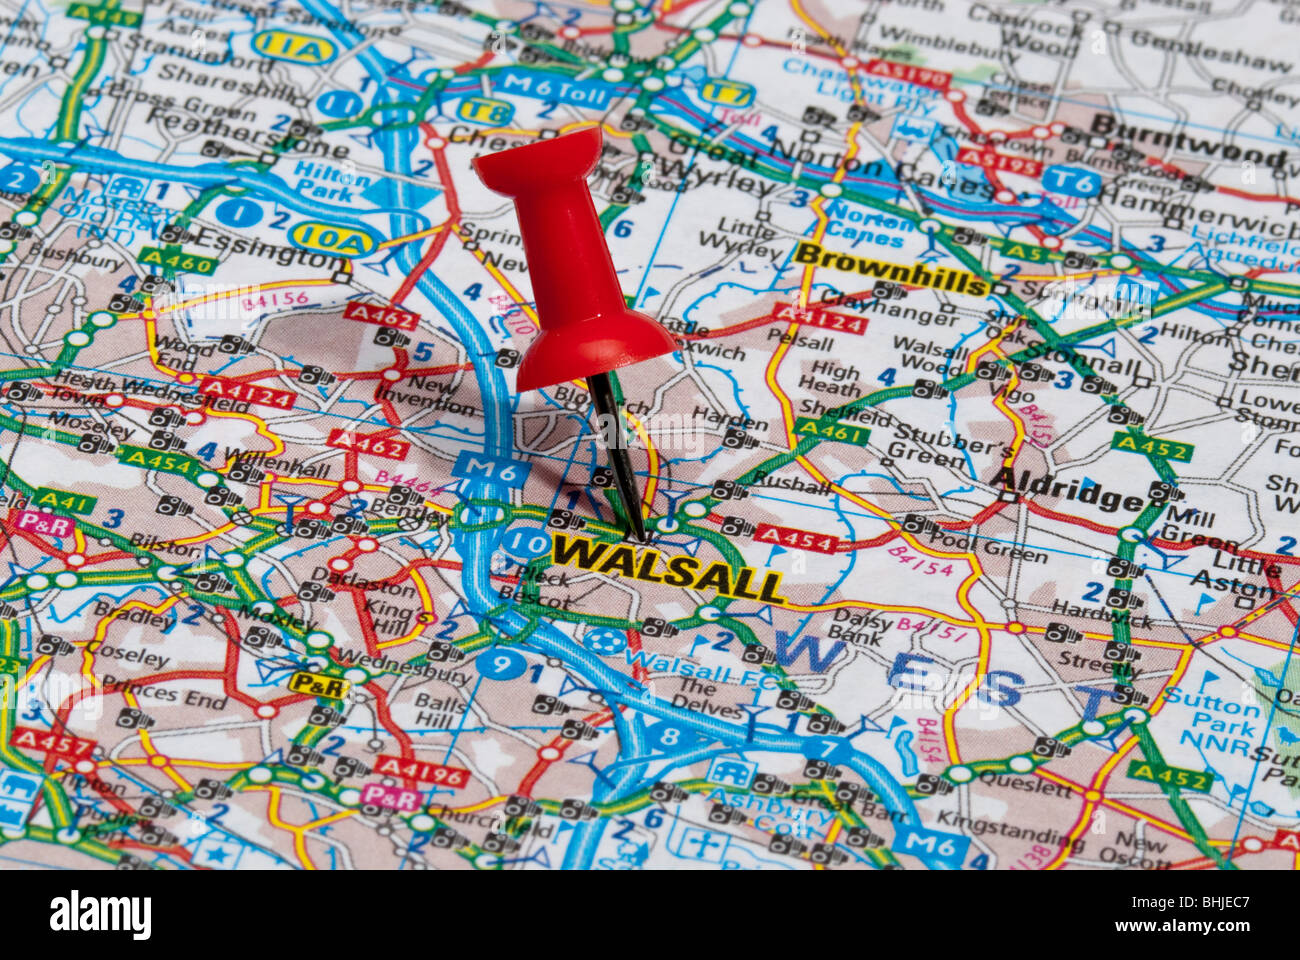 red map pin in road map pointing to city of Walsall - Stock Image